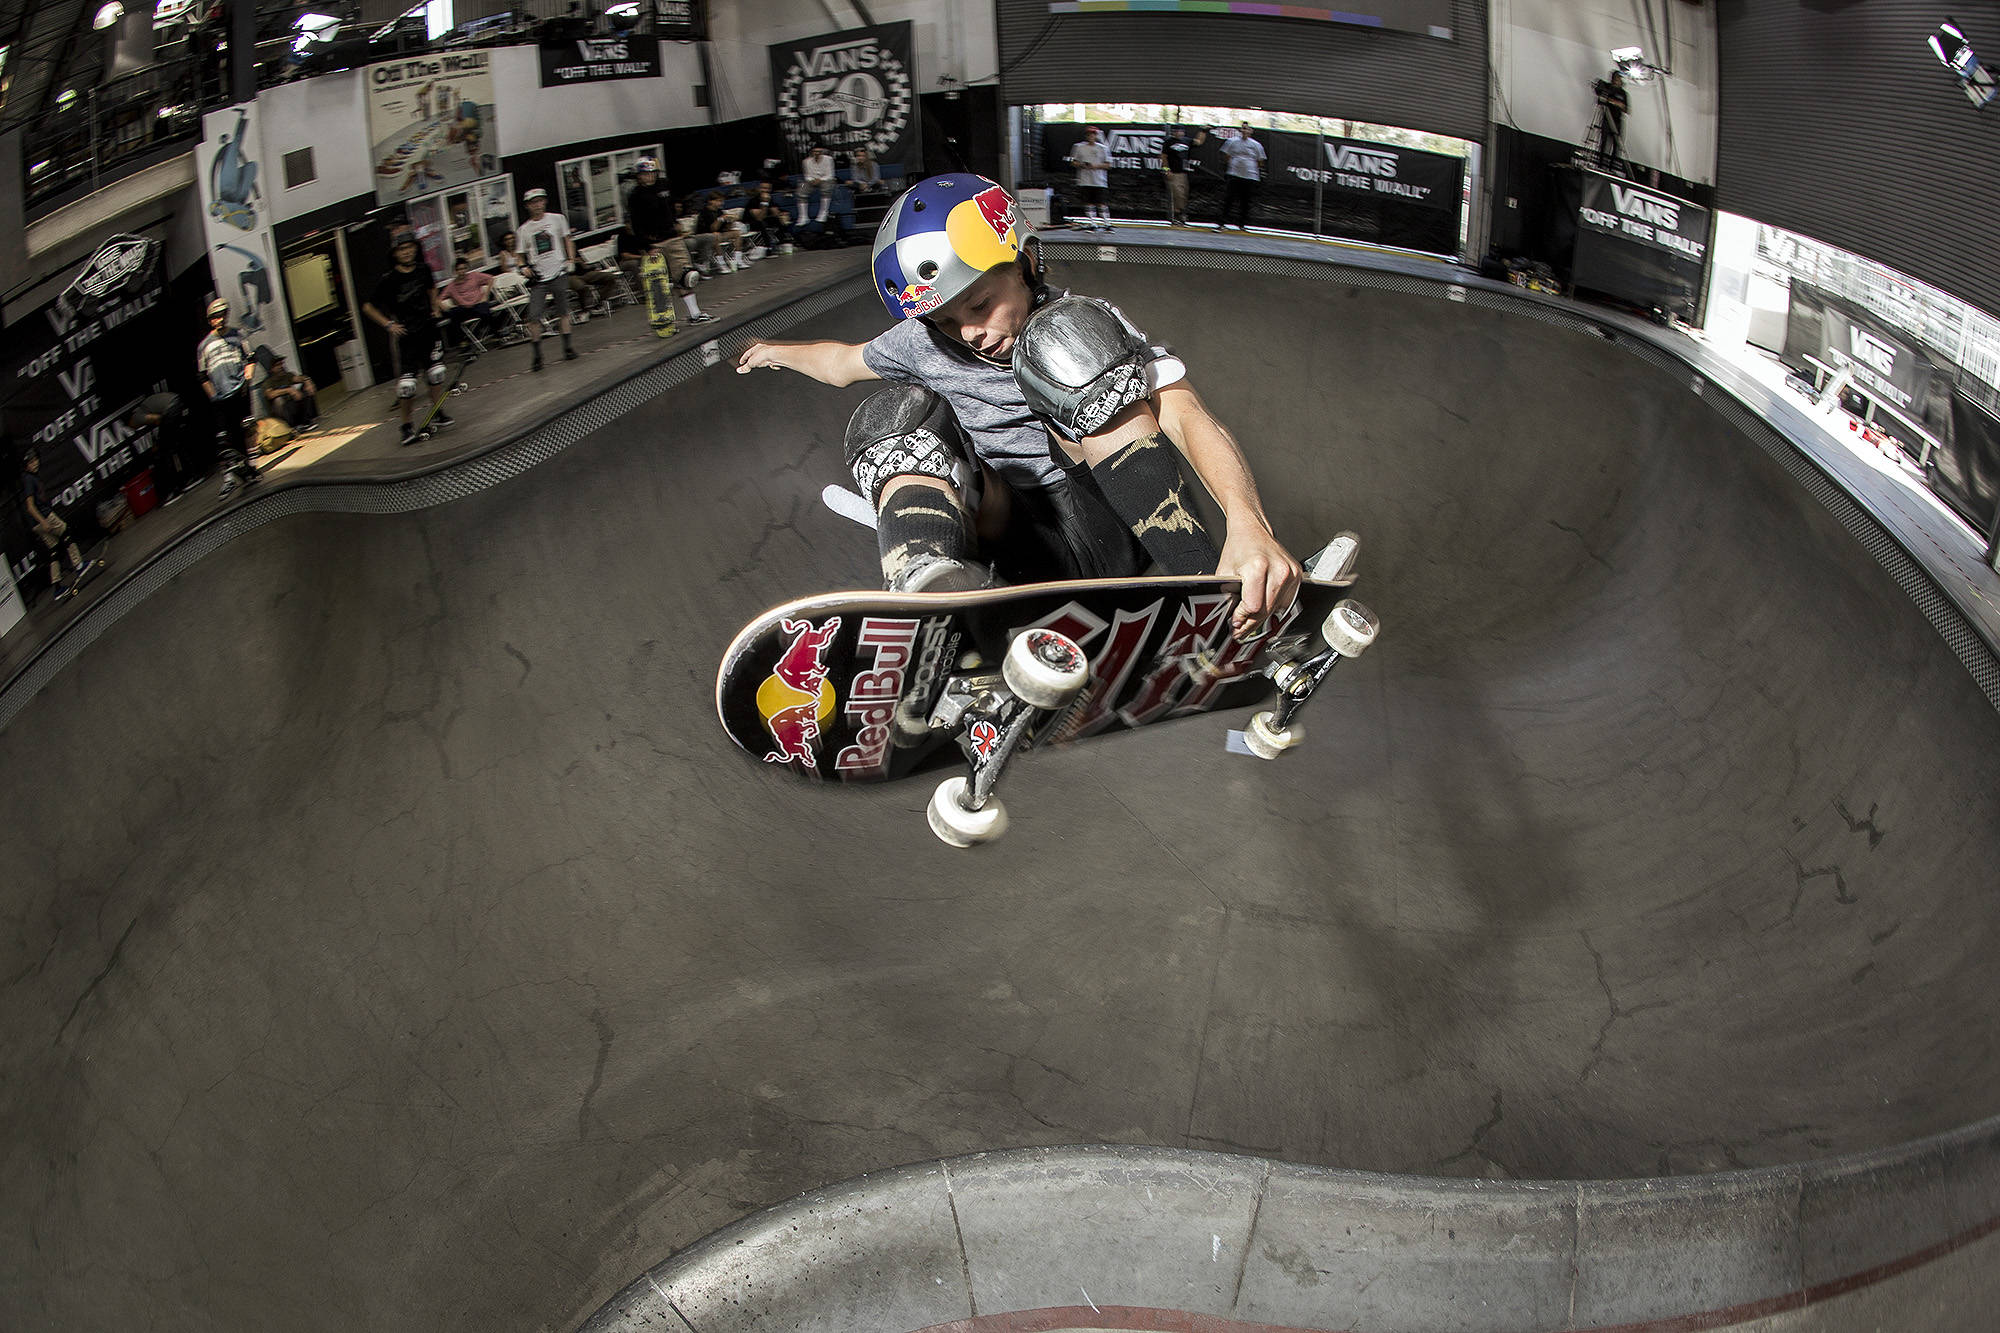 Keegan Palmer, alley-oop frontside air.